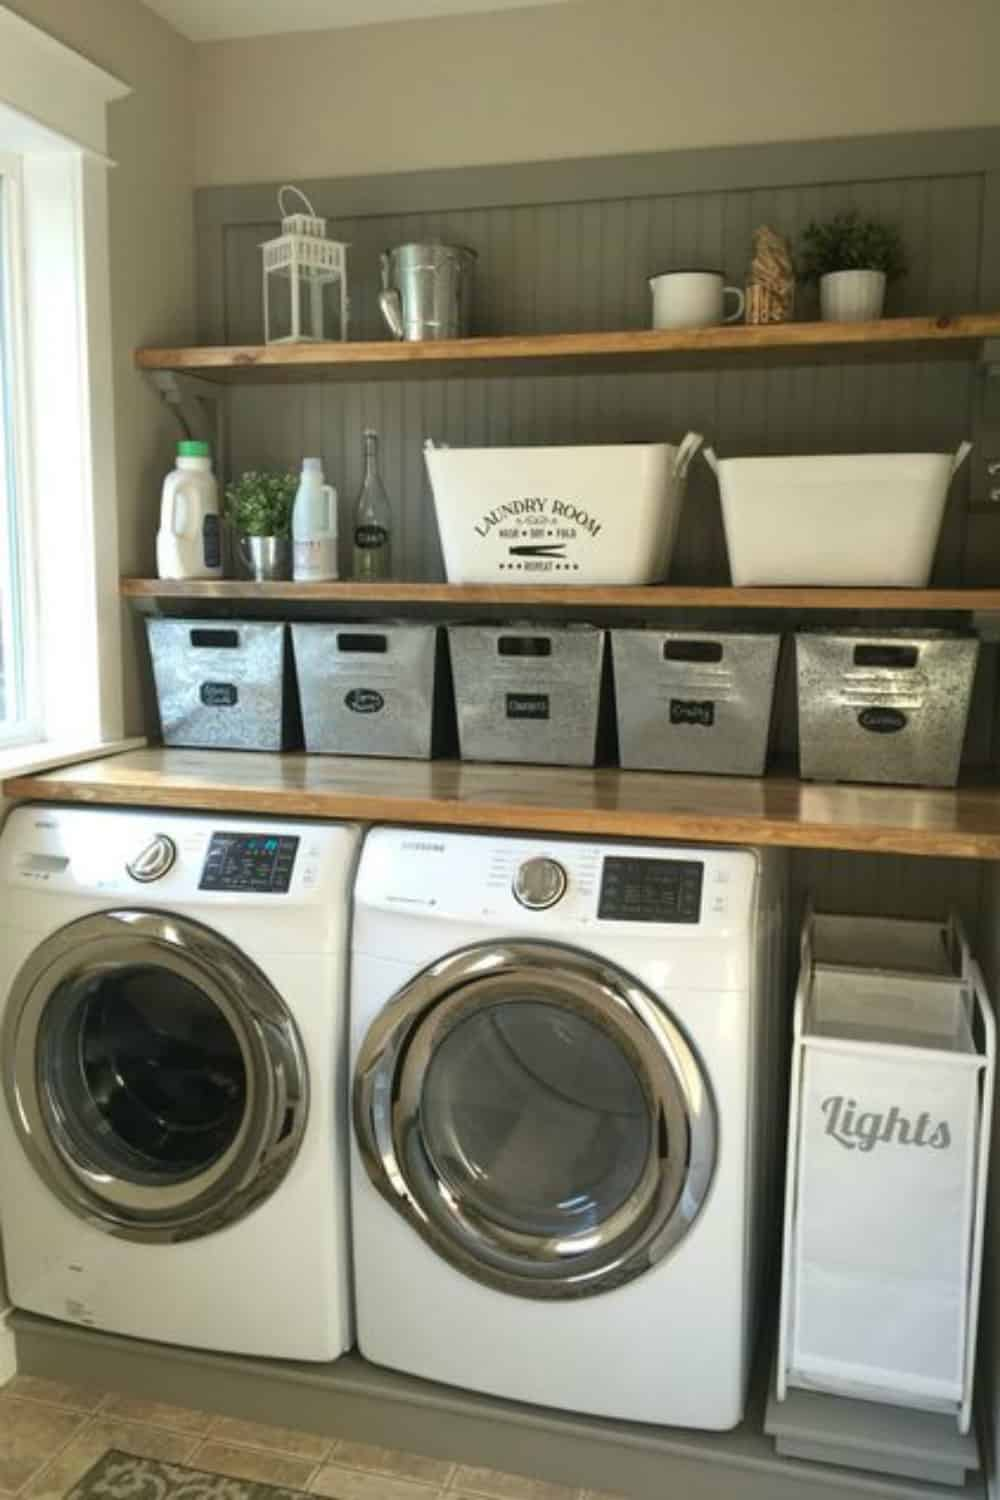 10 Stylish and small laundry areas that will make you want to actually do the laundry!